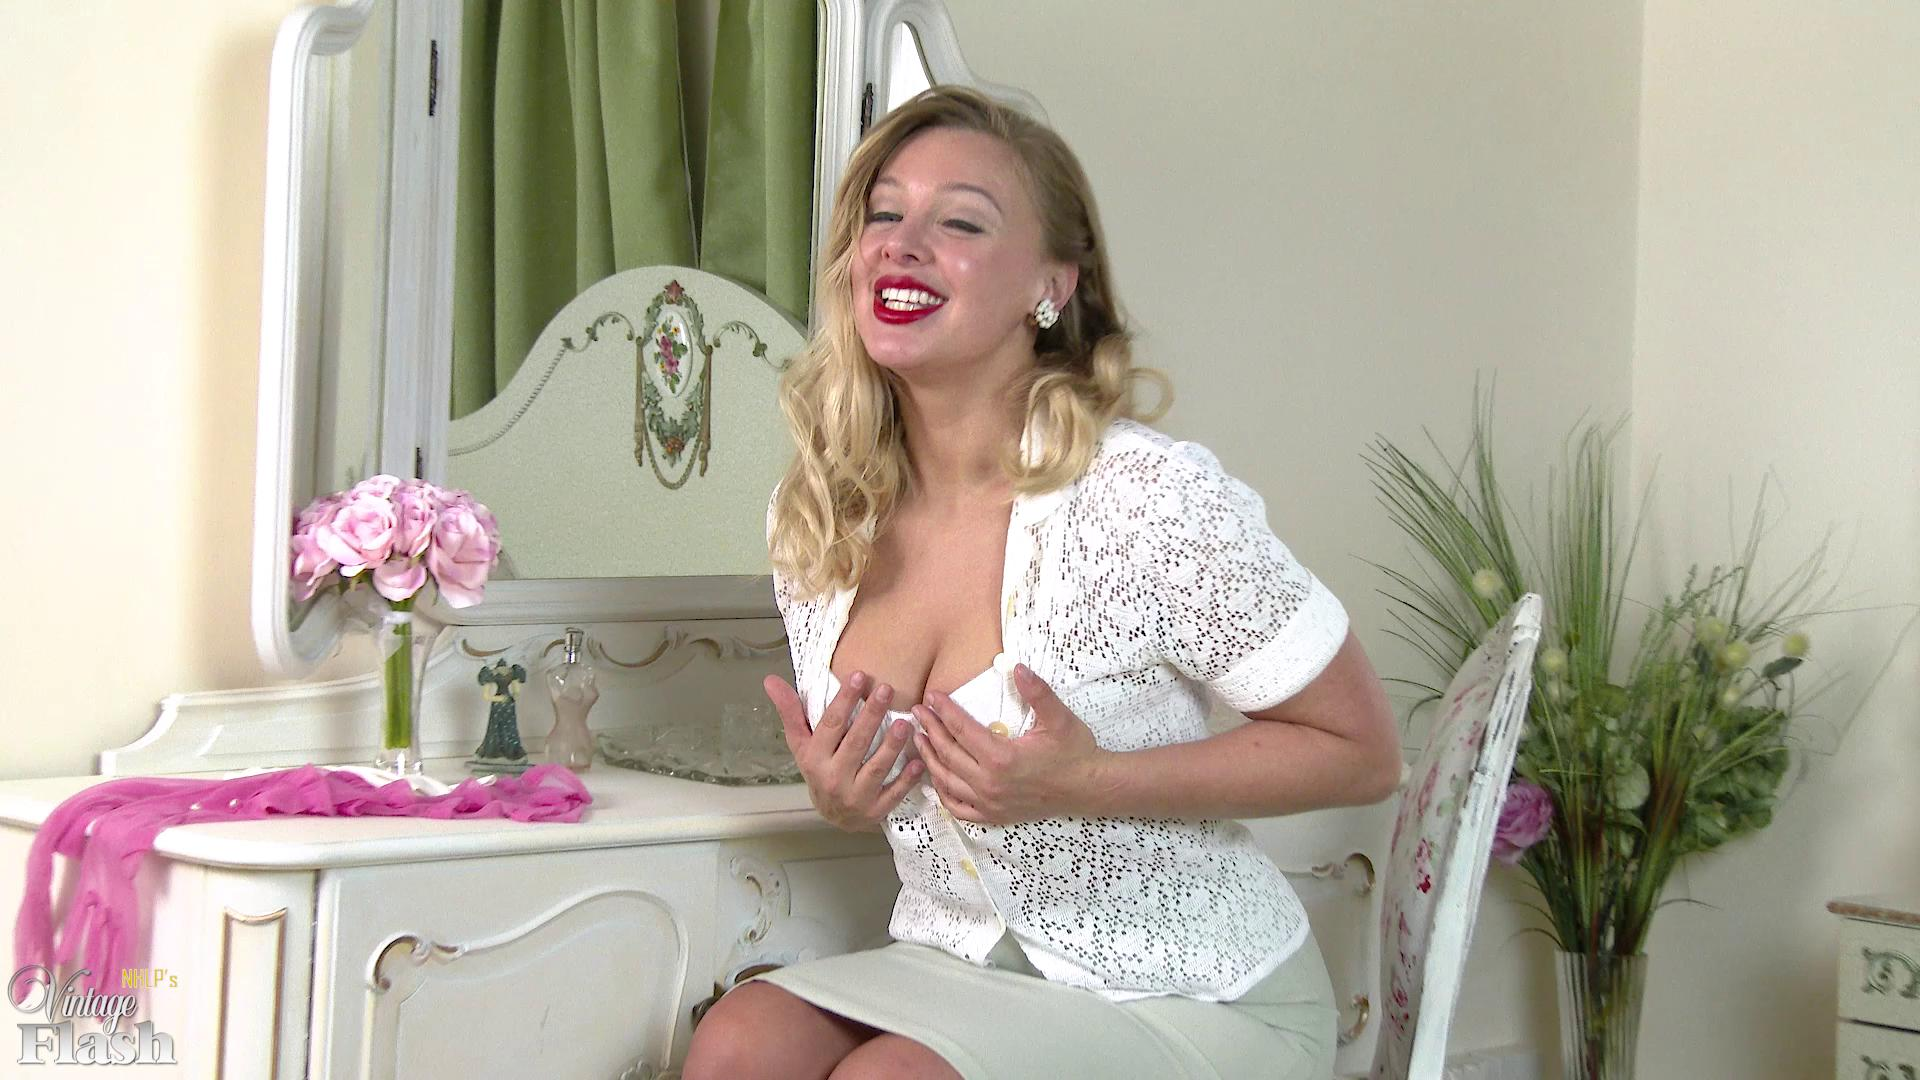 VintageFlash – Beth Bennett Sneak Into My Room